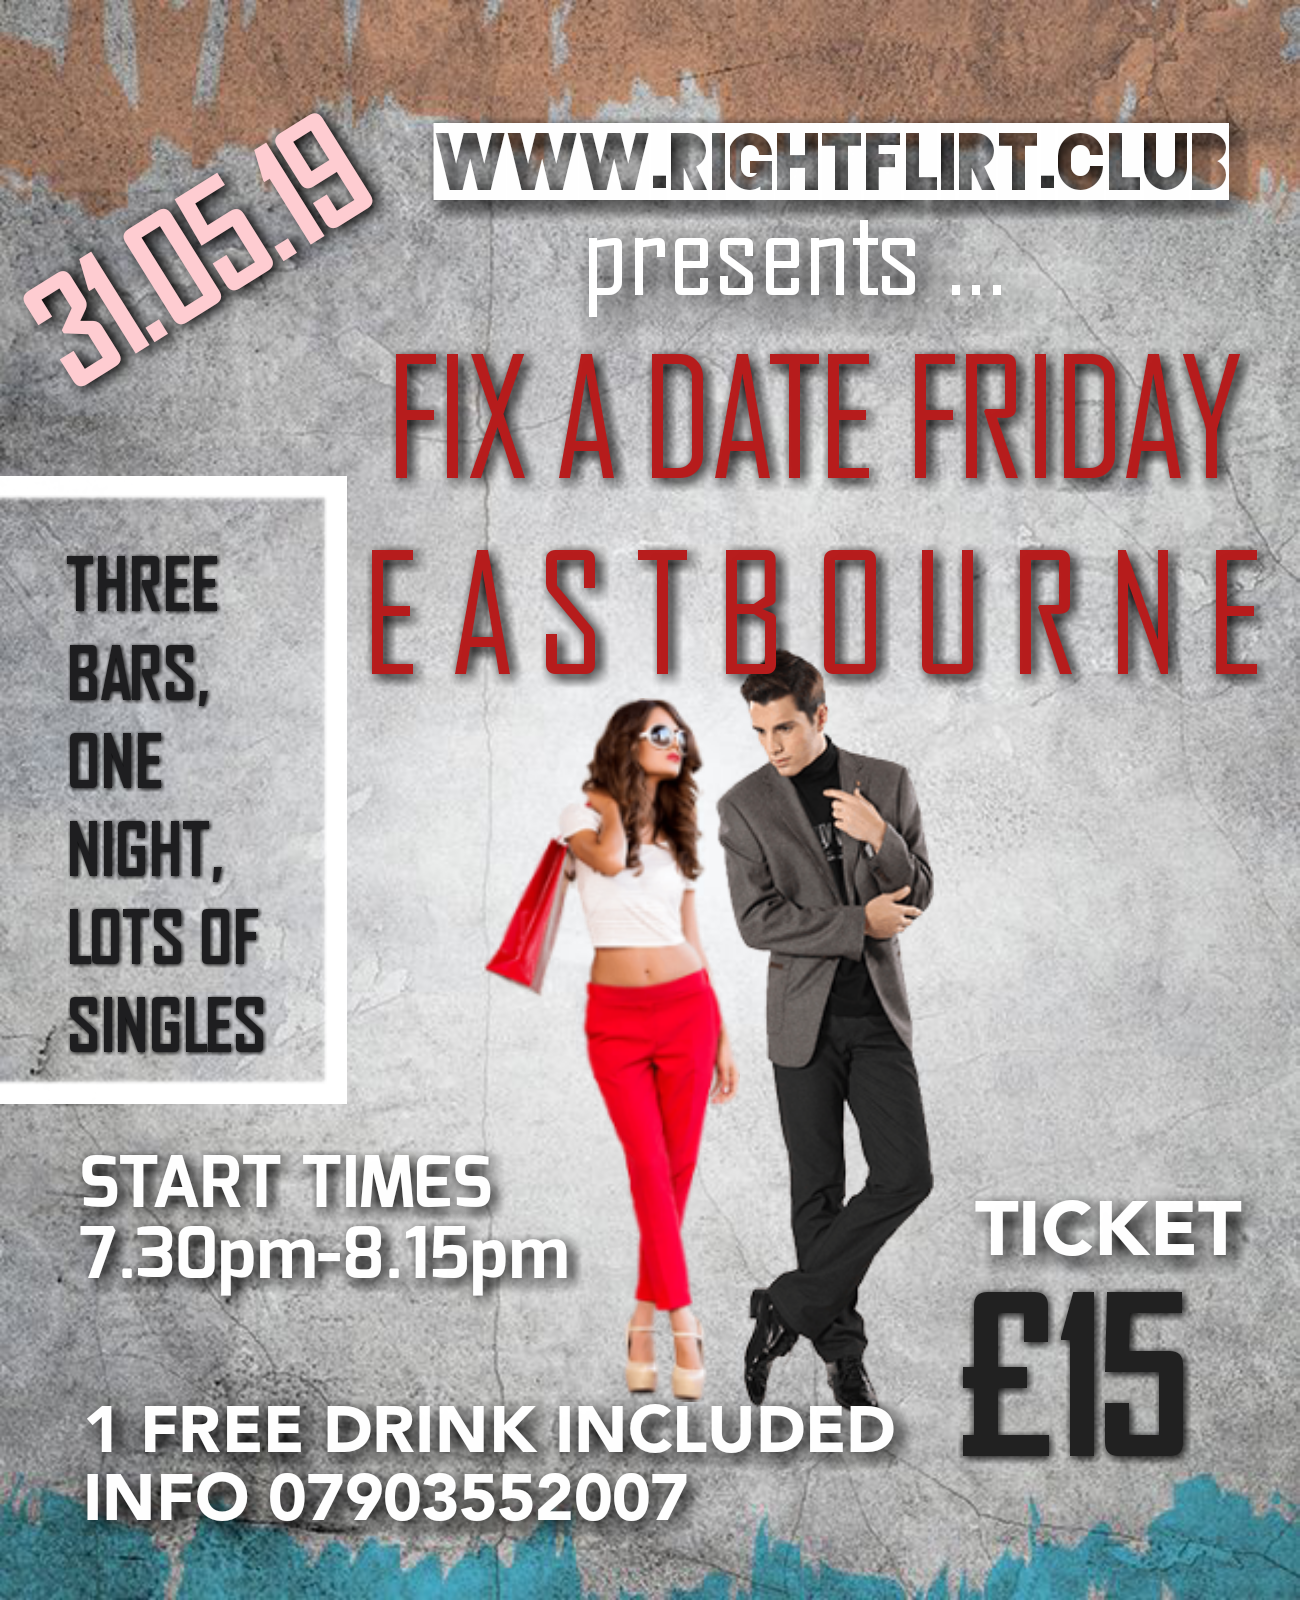 Fix a Date Friday (Eastbourne)